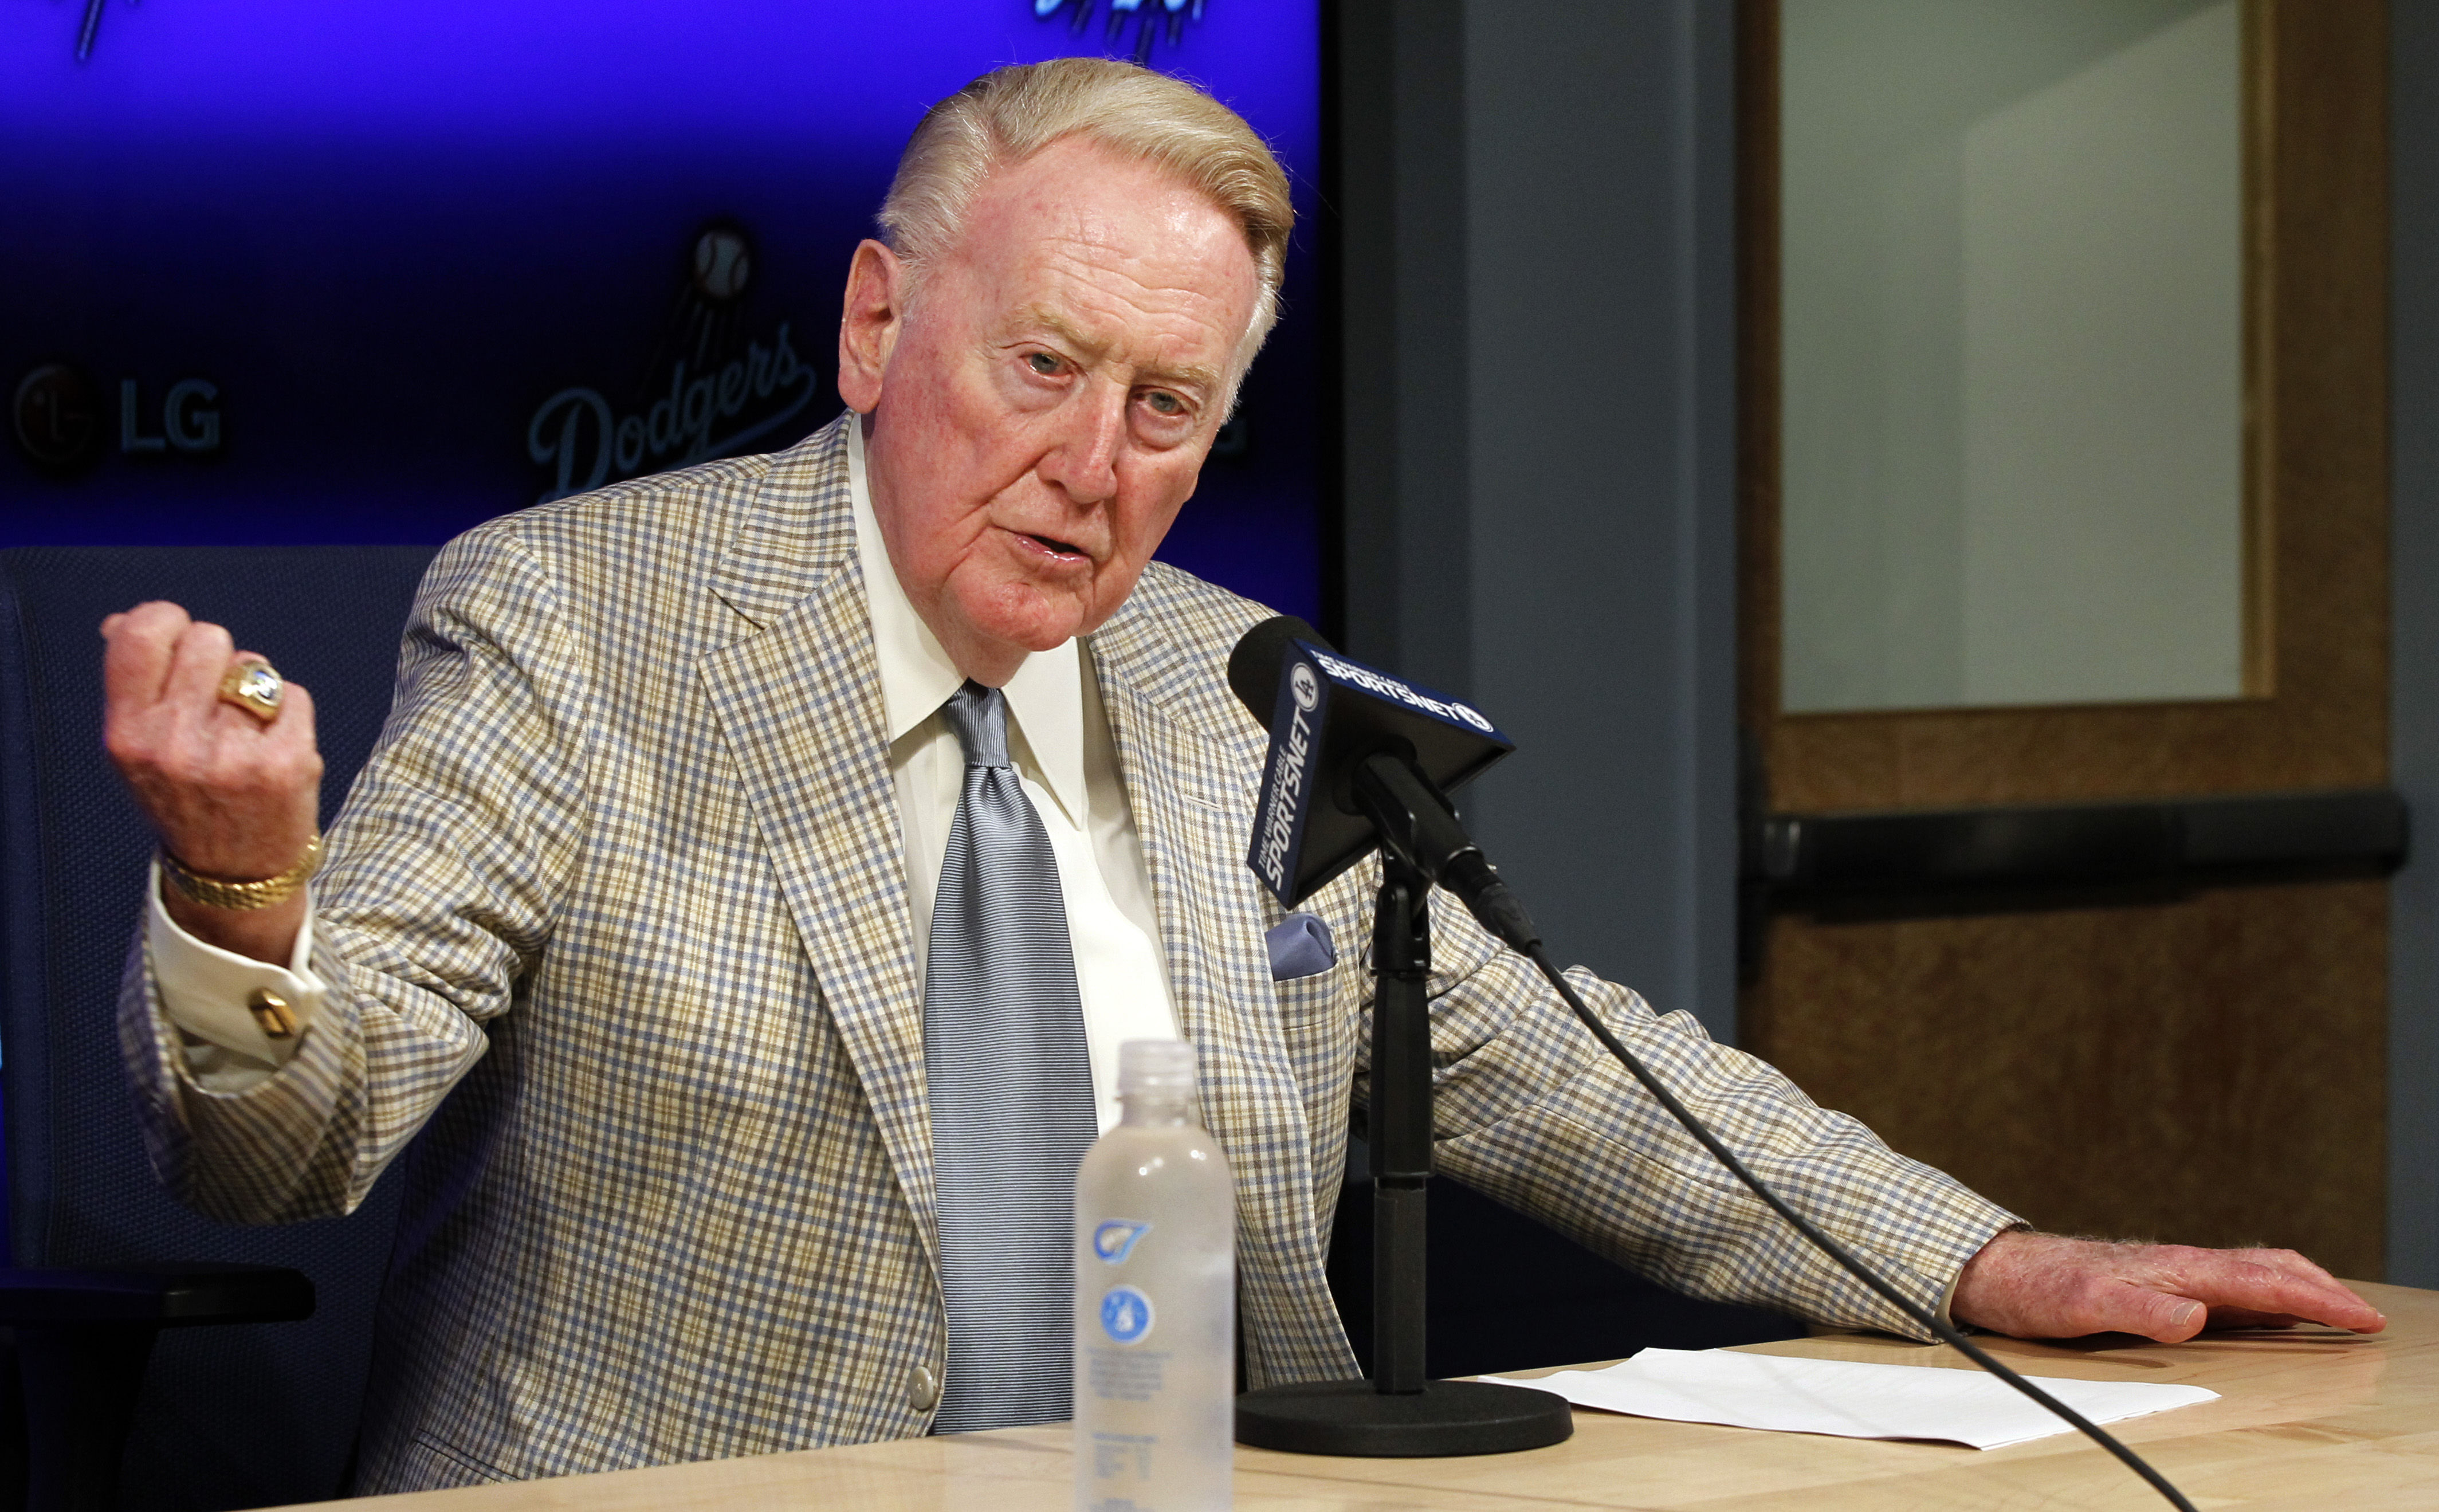 Los Angeles Dodgers Hall of Fame broadcaster Vin Scully announces he will return to broadcast his 67th, and last baseball season in 2016, during a news conference in Los Angeles, Saturday, Aug. 29, 2015. (AP Photo/Alex Gallardo)